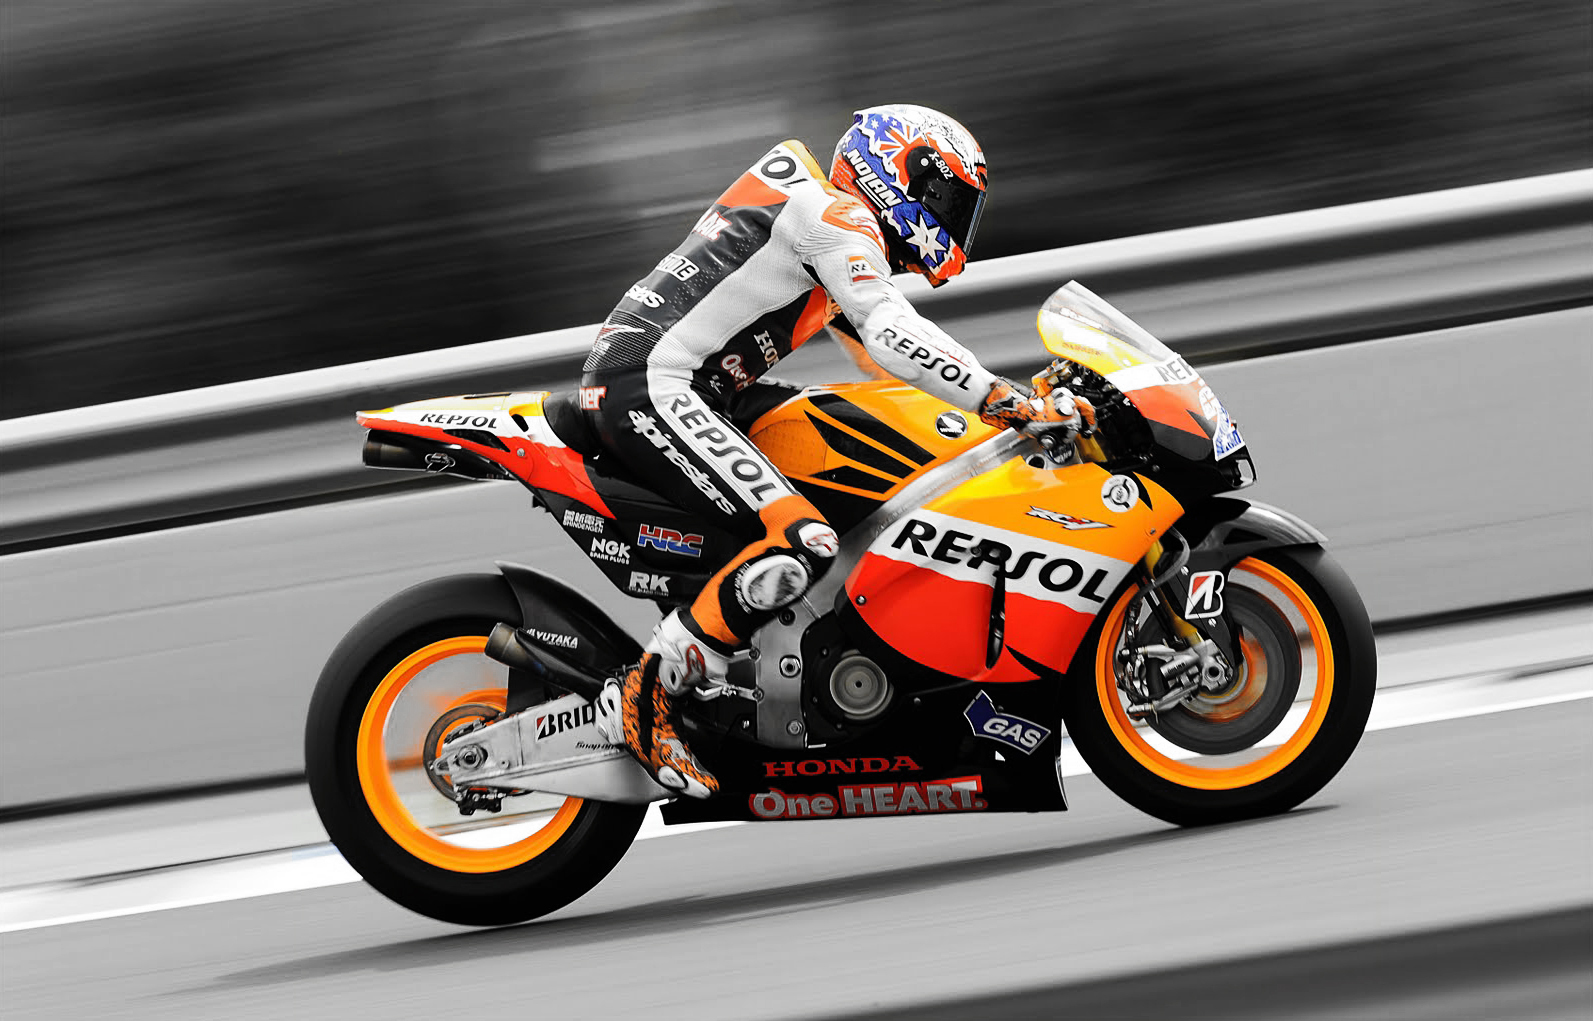 honda repsol wallpaper wallpapersafari. Black Bedroom Furniture Sets. Home Design Ideas